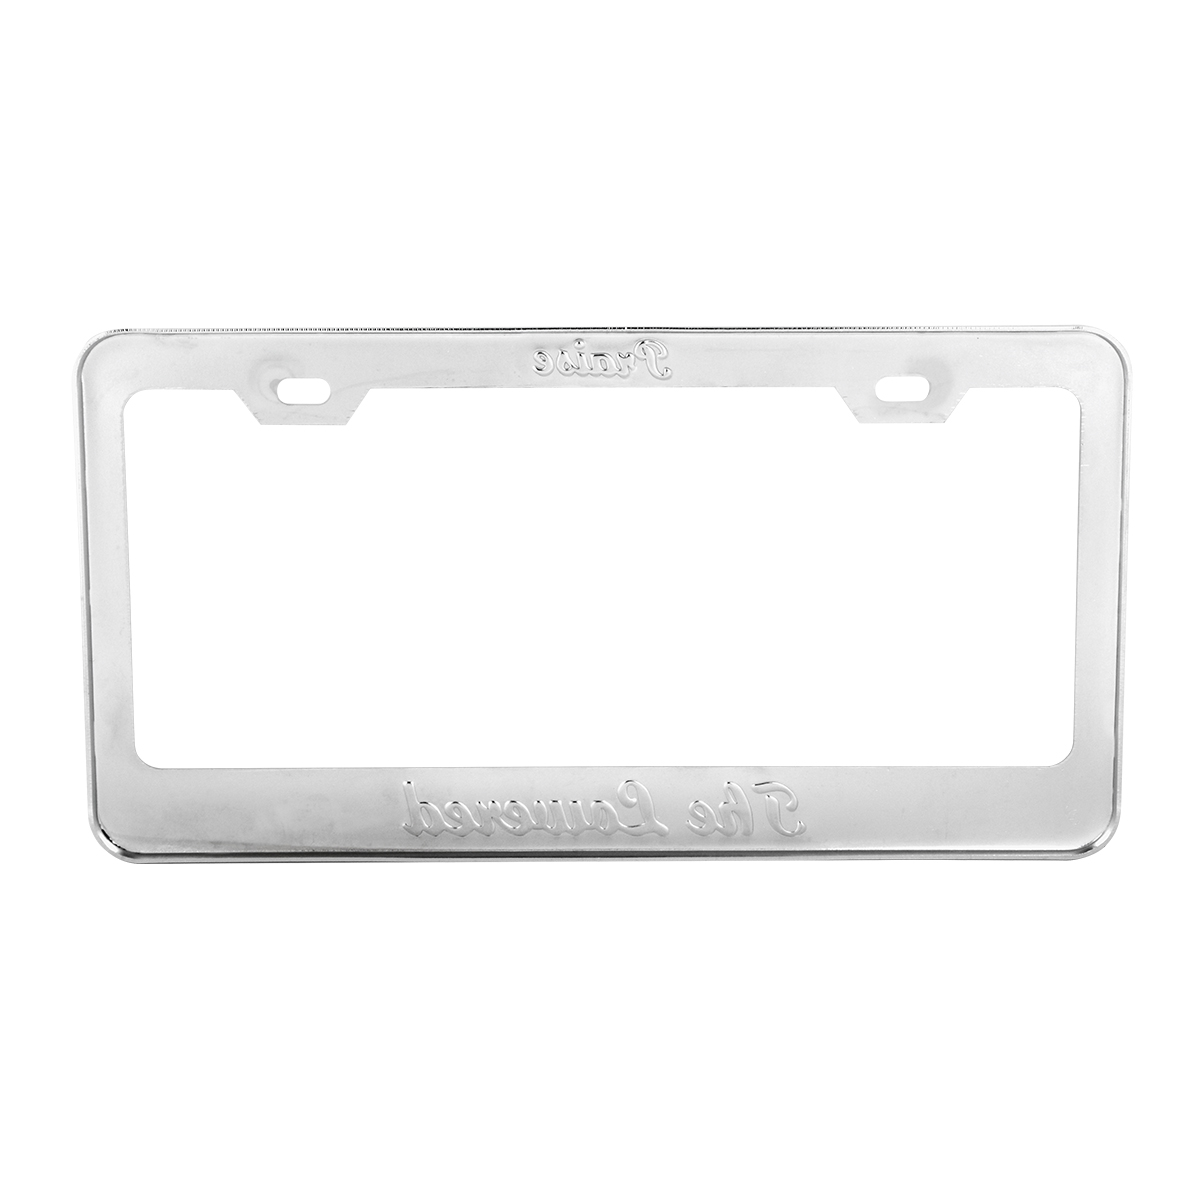 """2 Hole Frame with Black """"Praise the Lowered"""" Script - Back View"""